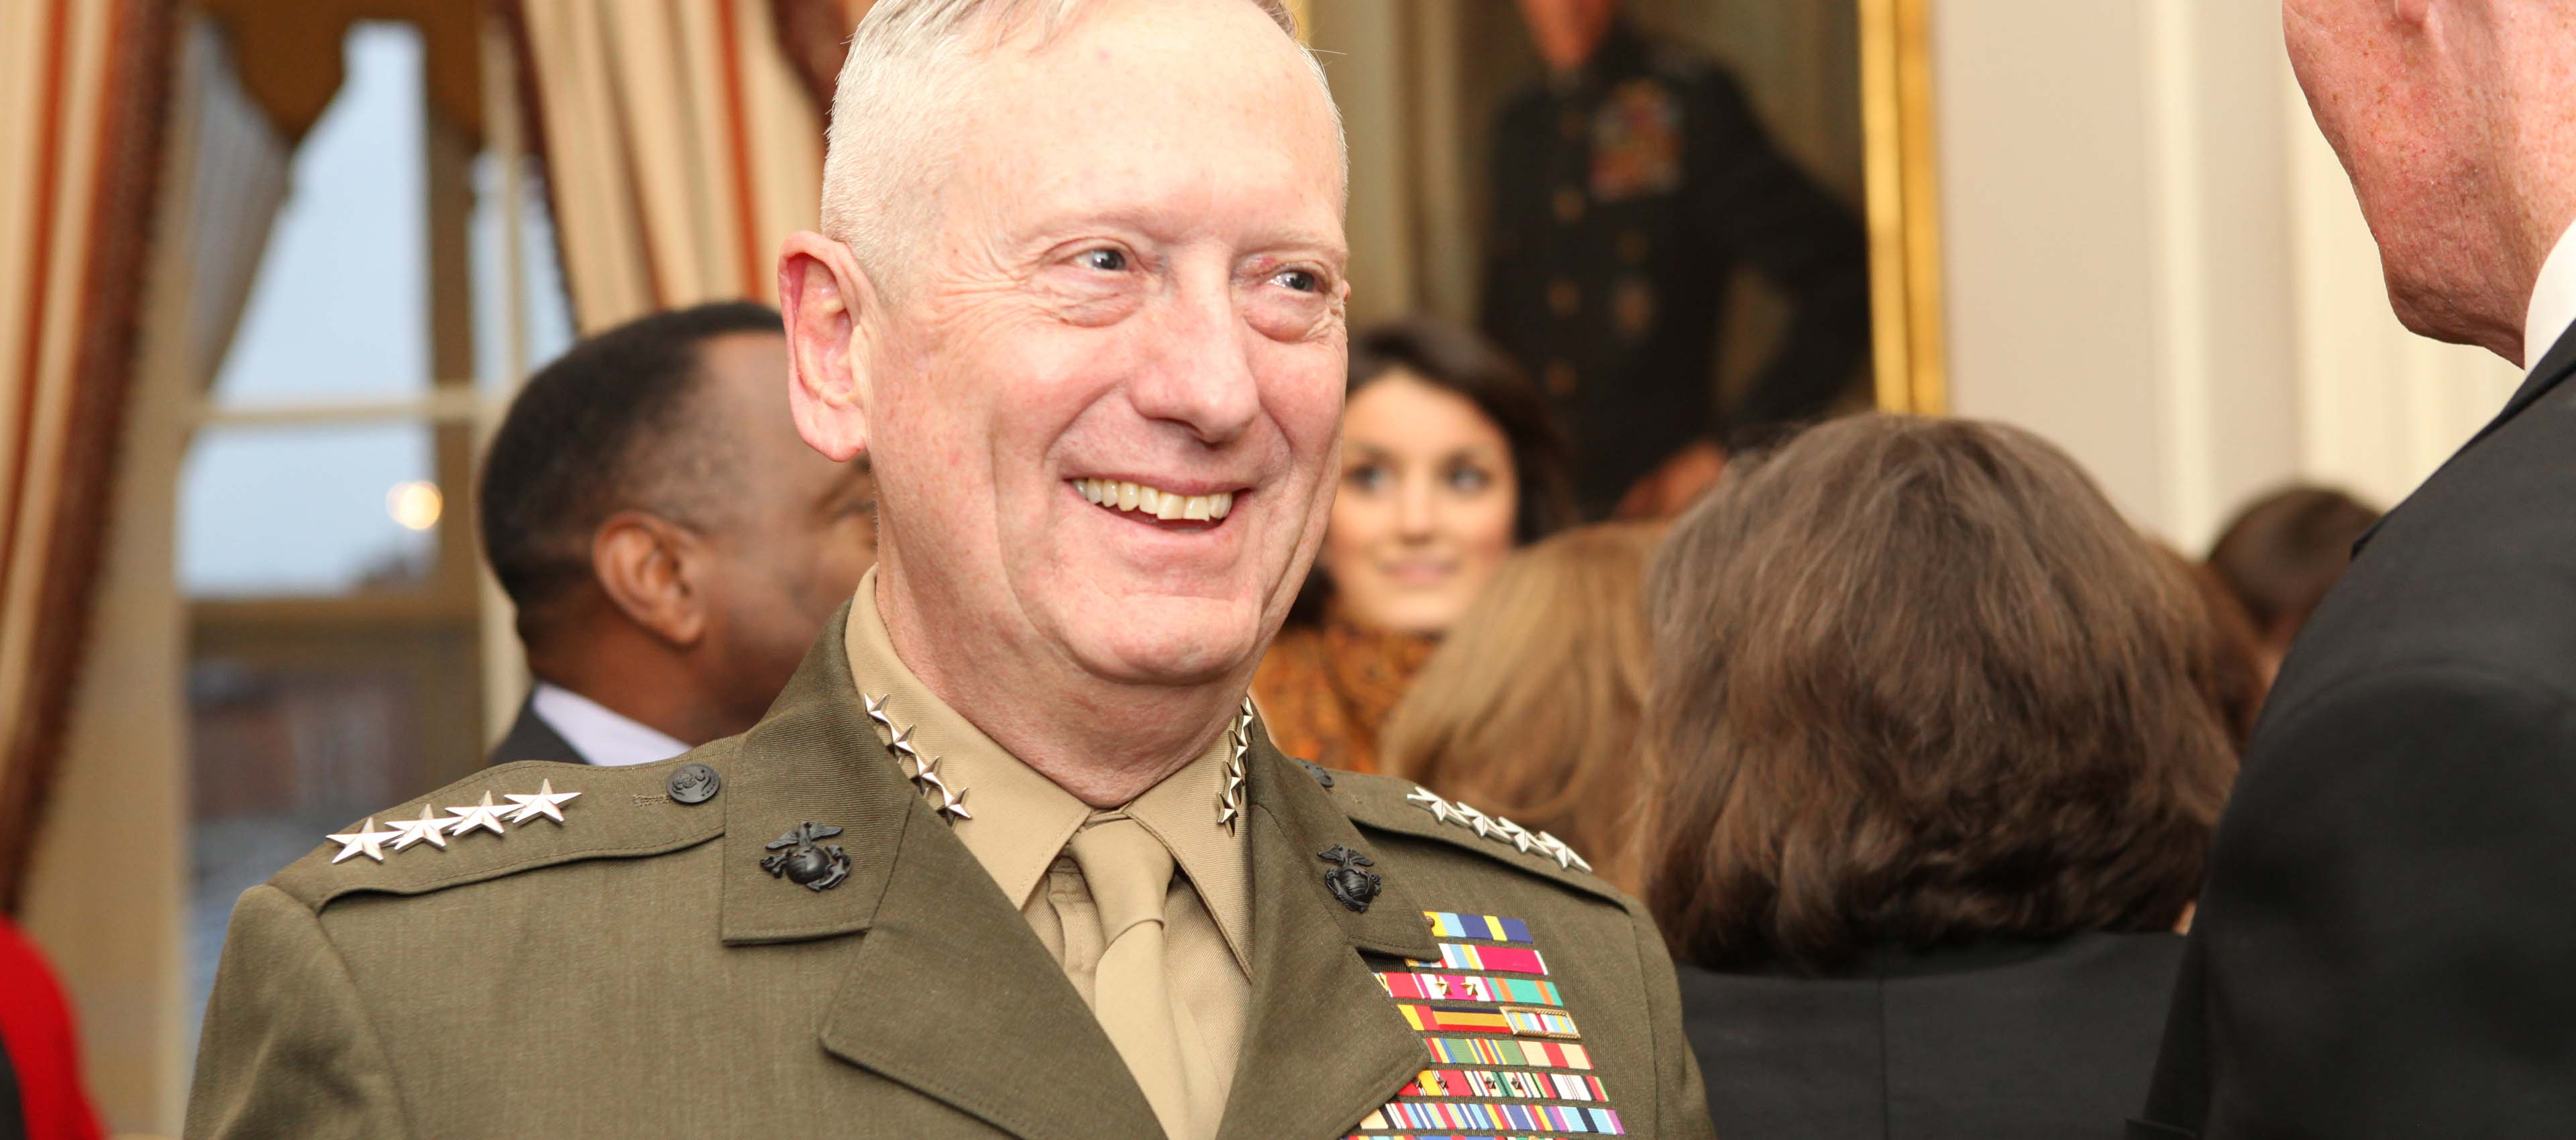 LGBT military groups ask Mattis for commitment to all milfams at confirmation